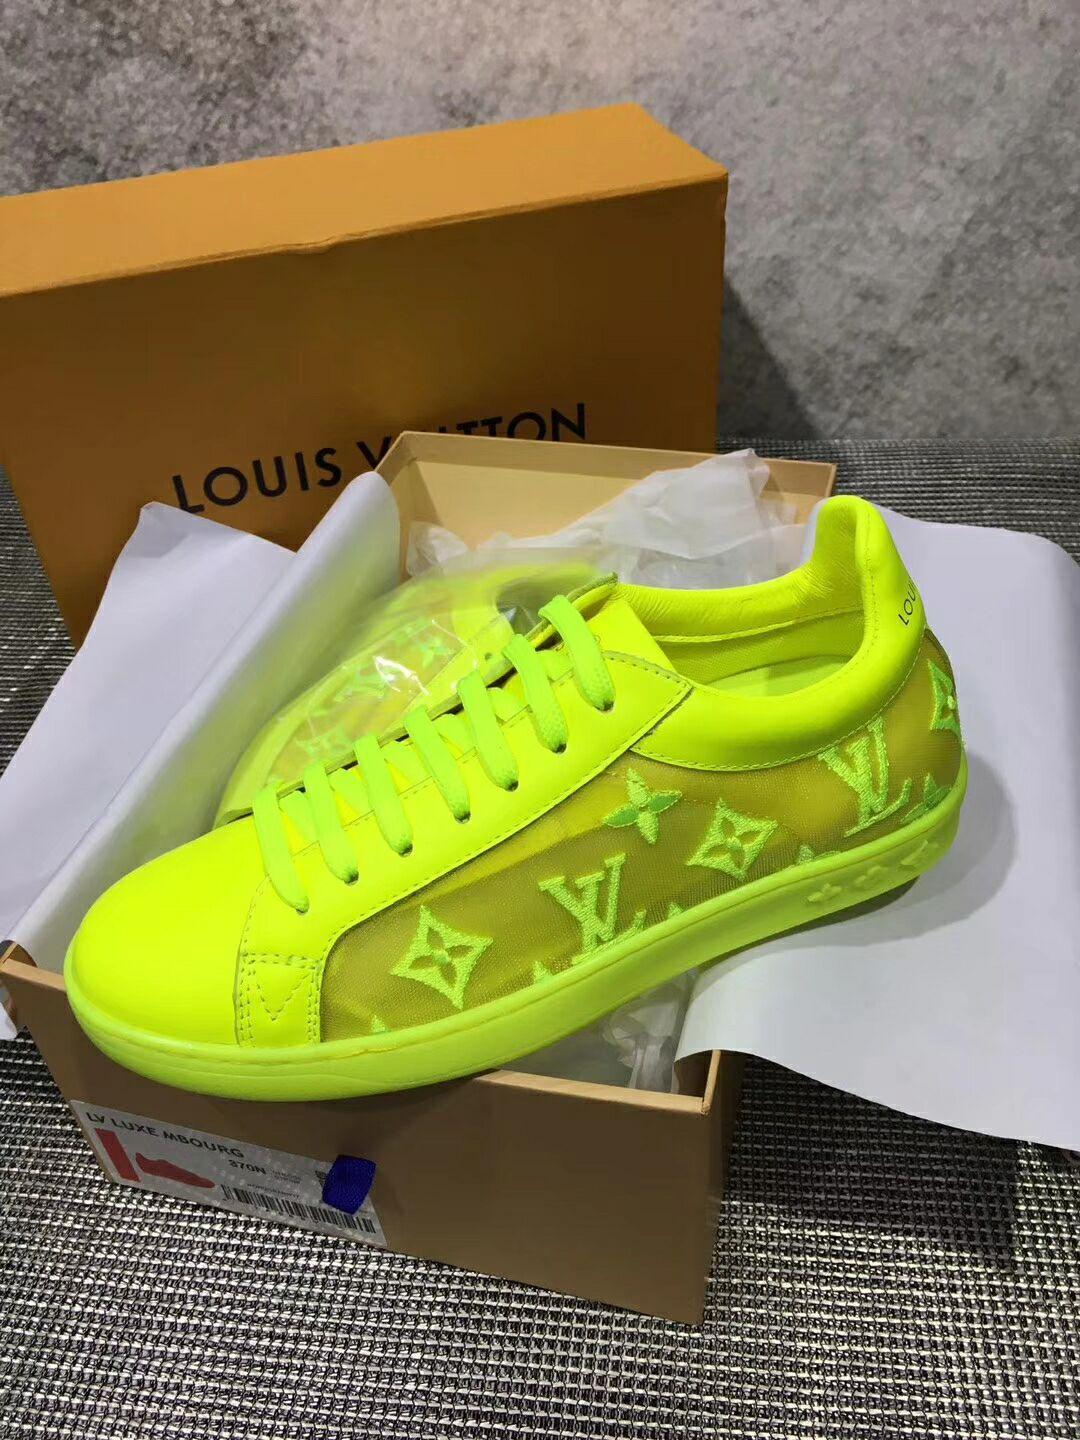 lv luxembourg sneaker 1A5S8Y Jaune  lv sneaker lv  yellow shoes lv men shoes  10